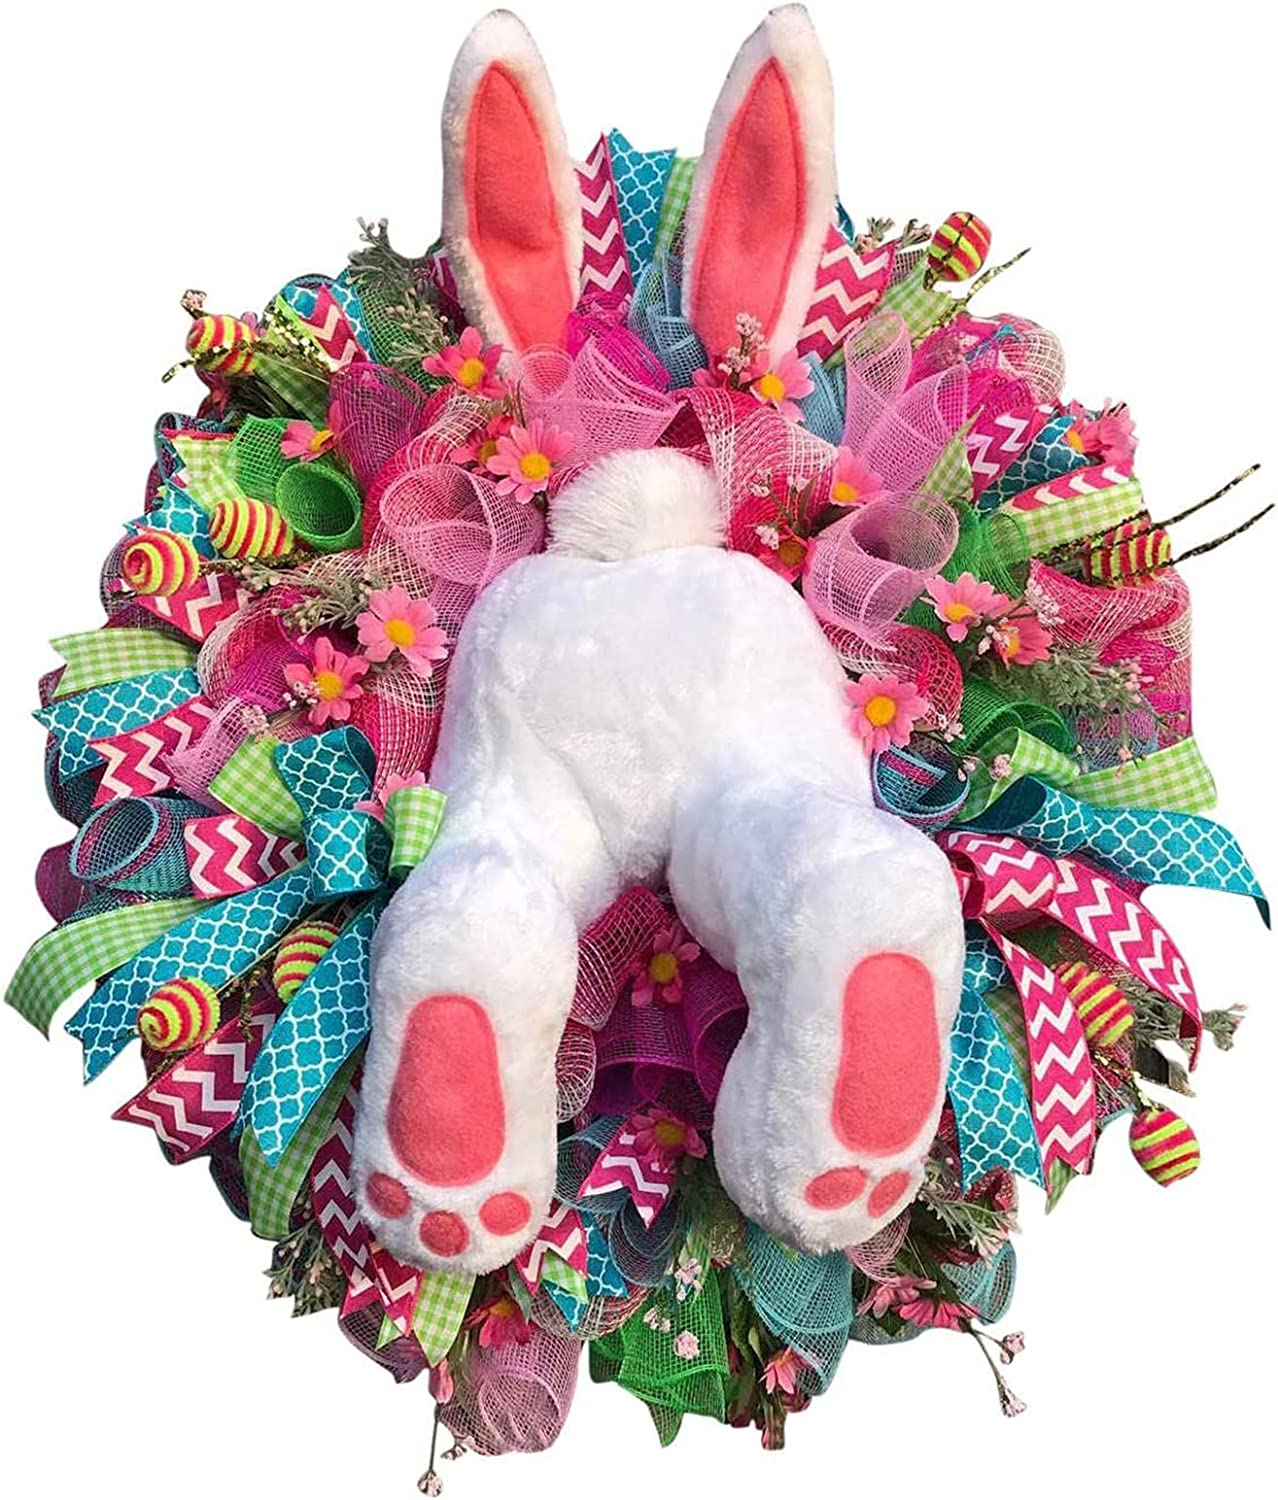 Floralby Easter Rabbit Wreath Decor for Front Door Easter Thief Bunny Butt with Ears Rabbit Shape Garland Wall Decor Easter Decorations Easter Rabbit Front Door Wreath